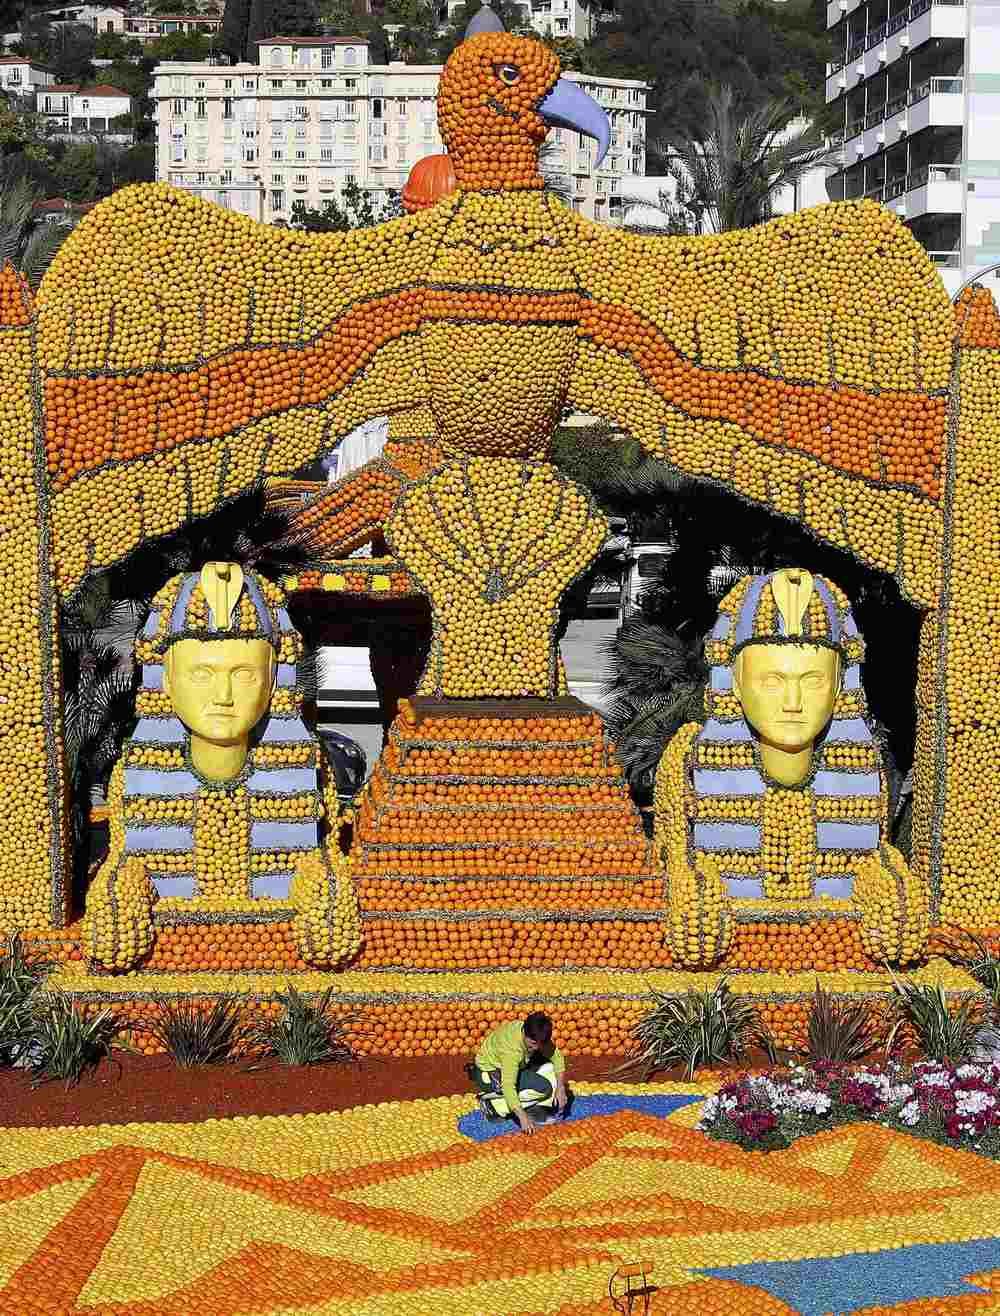 A worker puts the final touch to a replica of a giant eagle and pharaons made with lemons and oranges which shows a scene of the movie